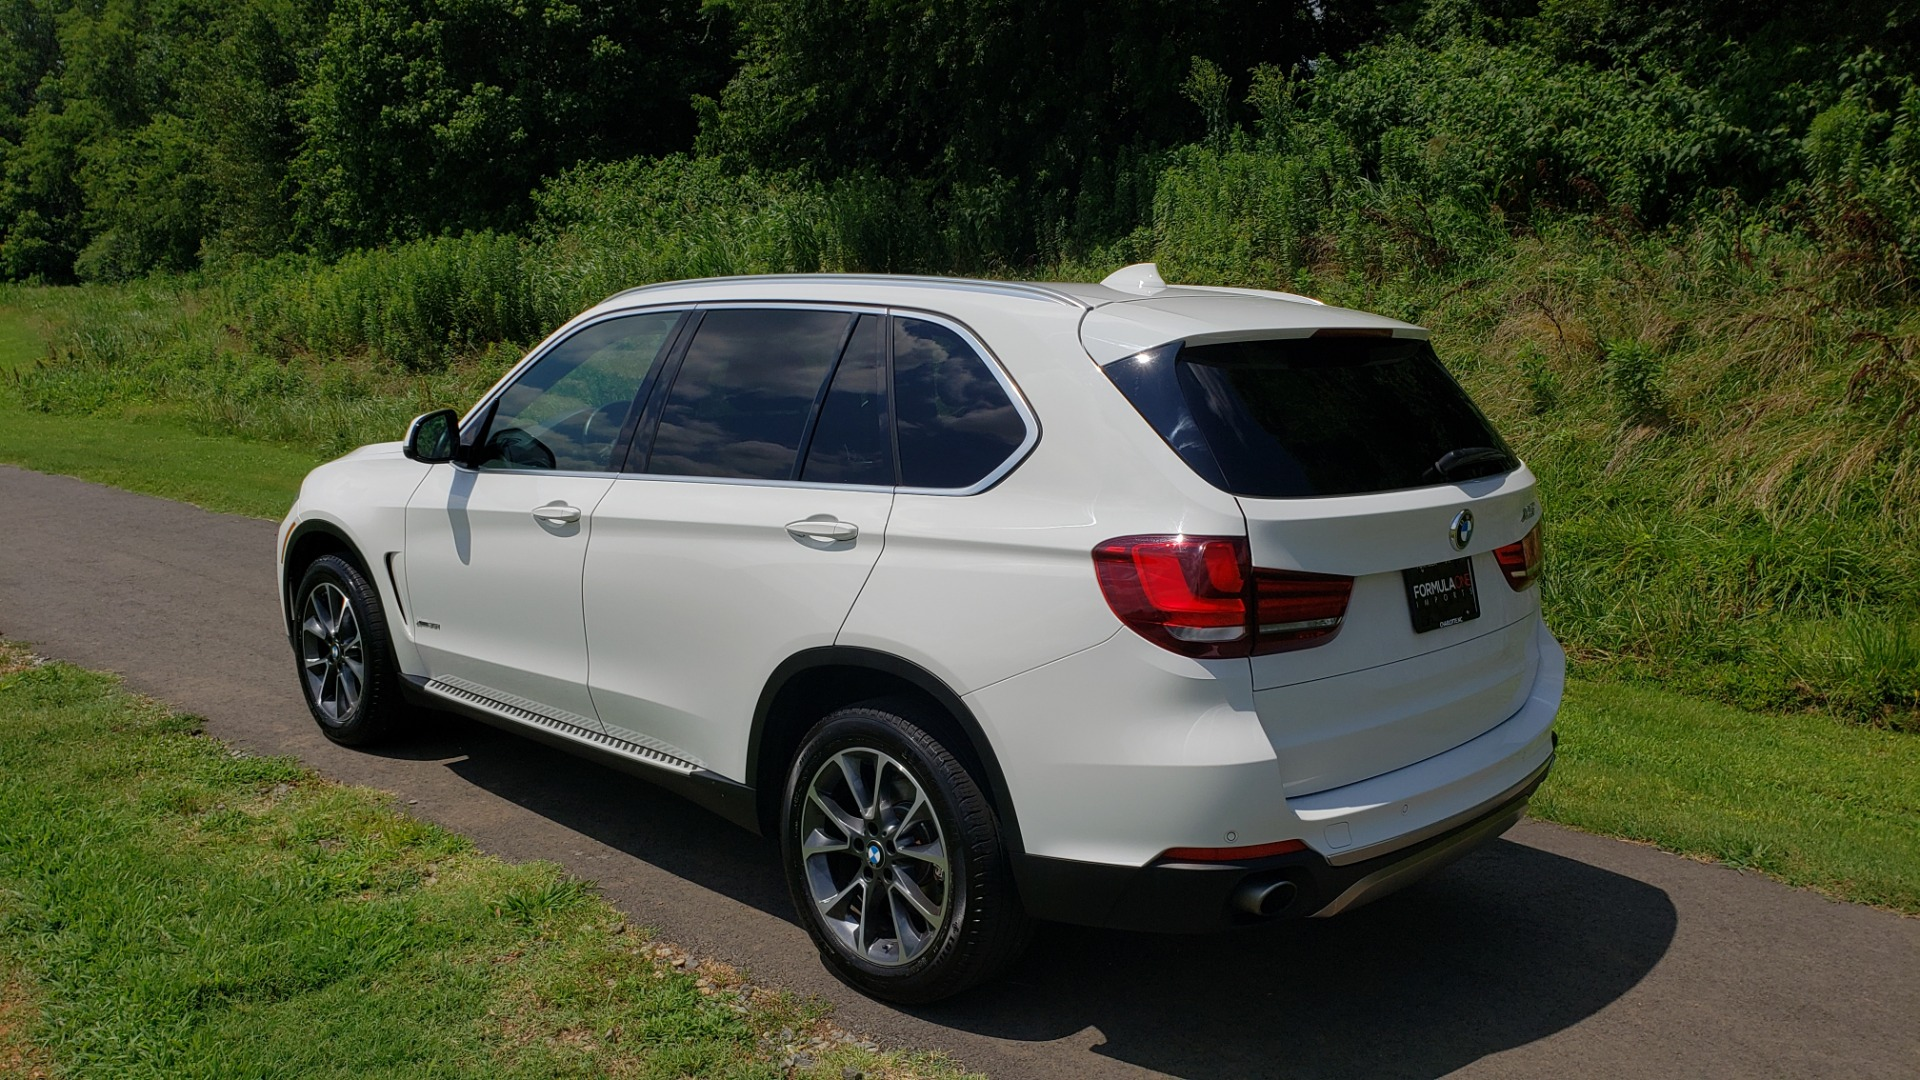 Used 2017 BMW X5 XDRIVE35I / NAV / SUNROOF / RUNNING BOARDS / REARVIEW for sale $33,995 at Formula Imports in Charlotte NC 28227 3